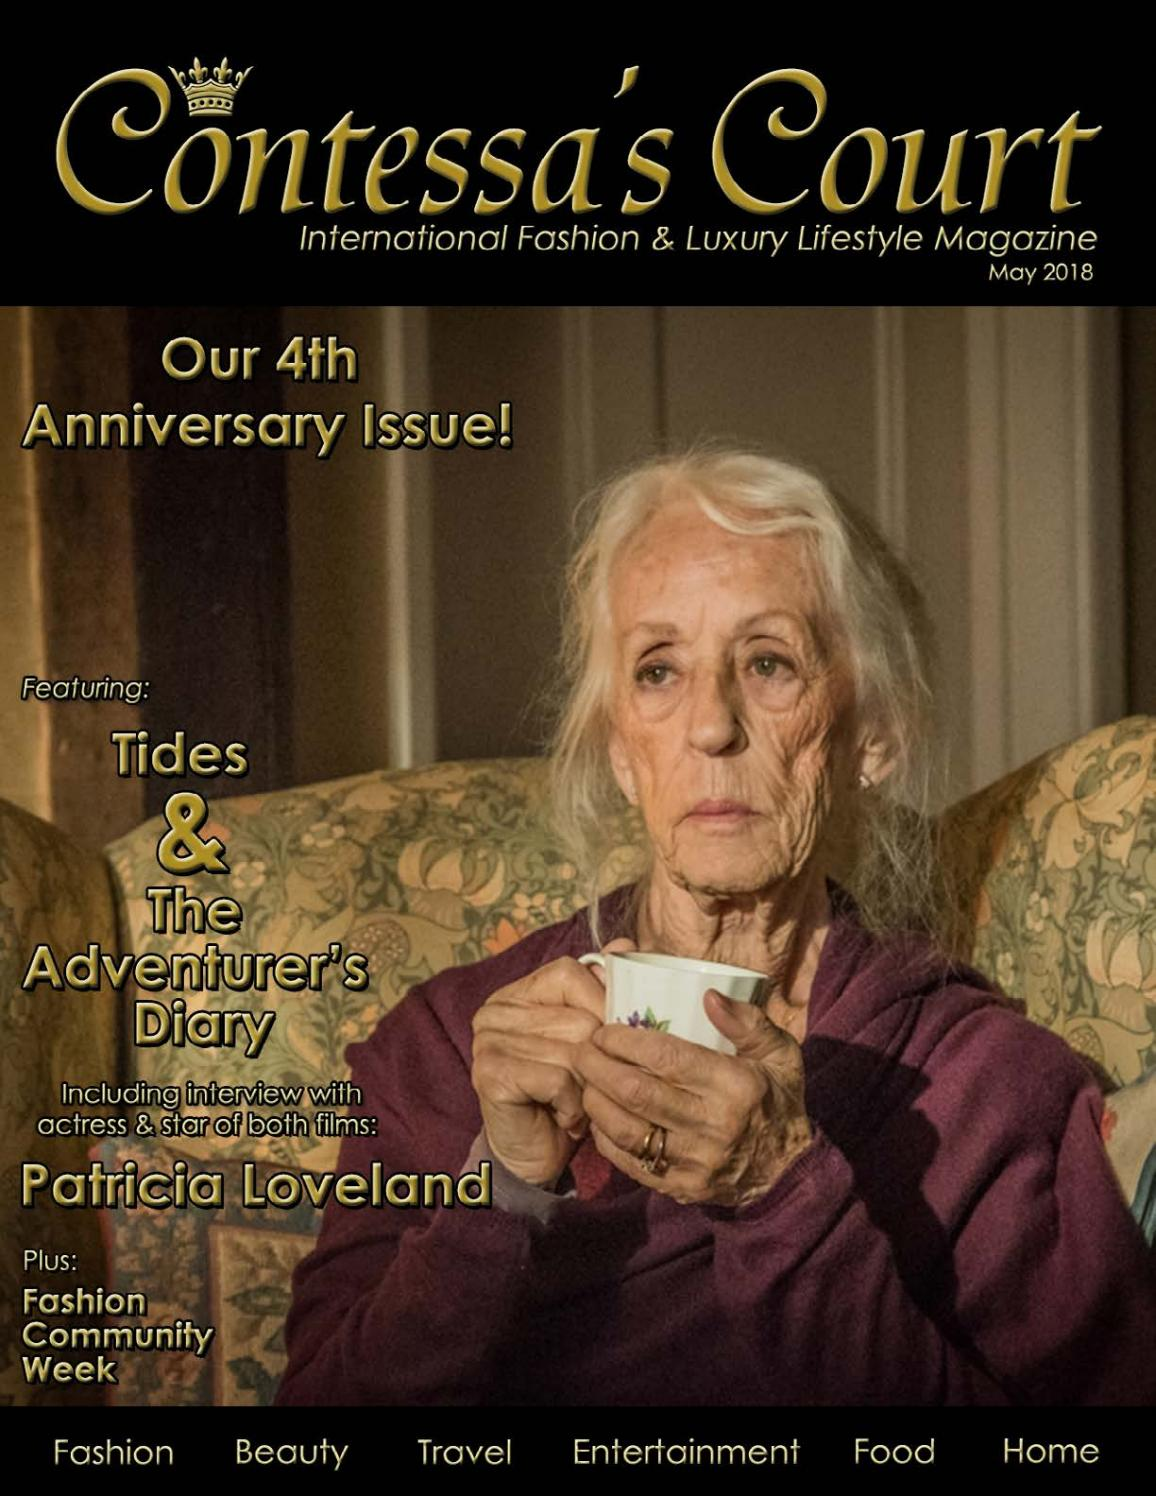 5348ae995289 Contessa's Court May 2018 by Contessa's Court - issuu